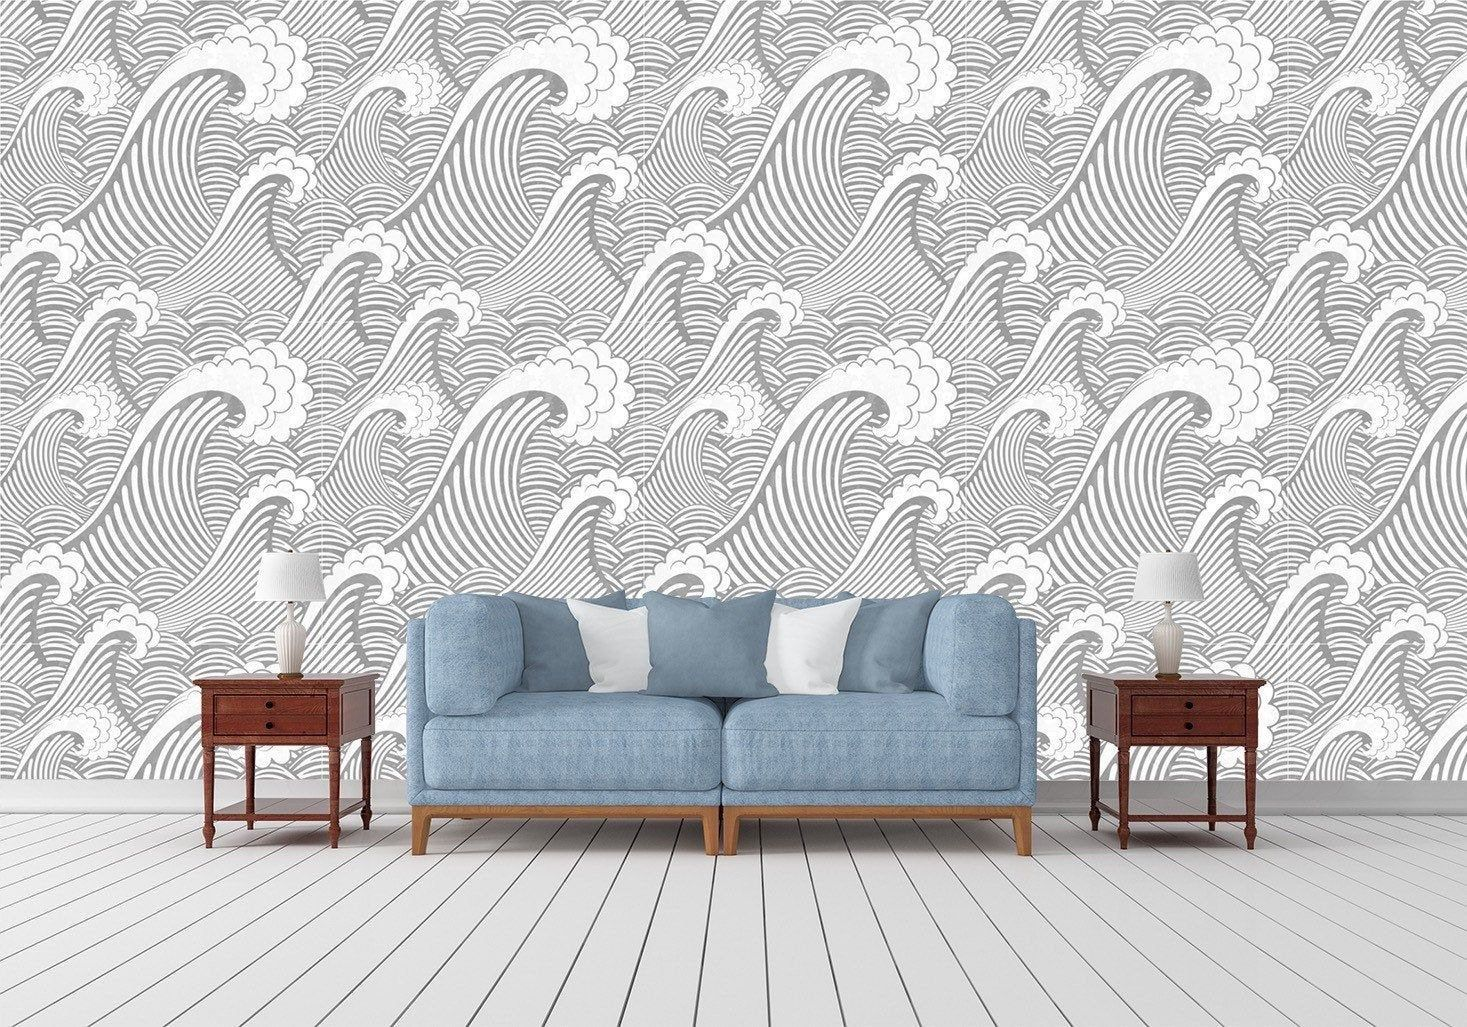 Removable Peel And Stick Wallpaper Grey Ocean Waves Wallpaper Etsy Peel And Stick Wallpaper Waves Wallpaper Vinyl Wallpaper